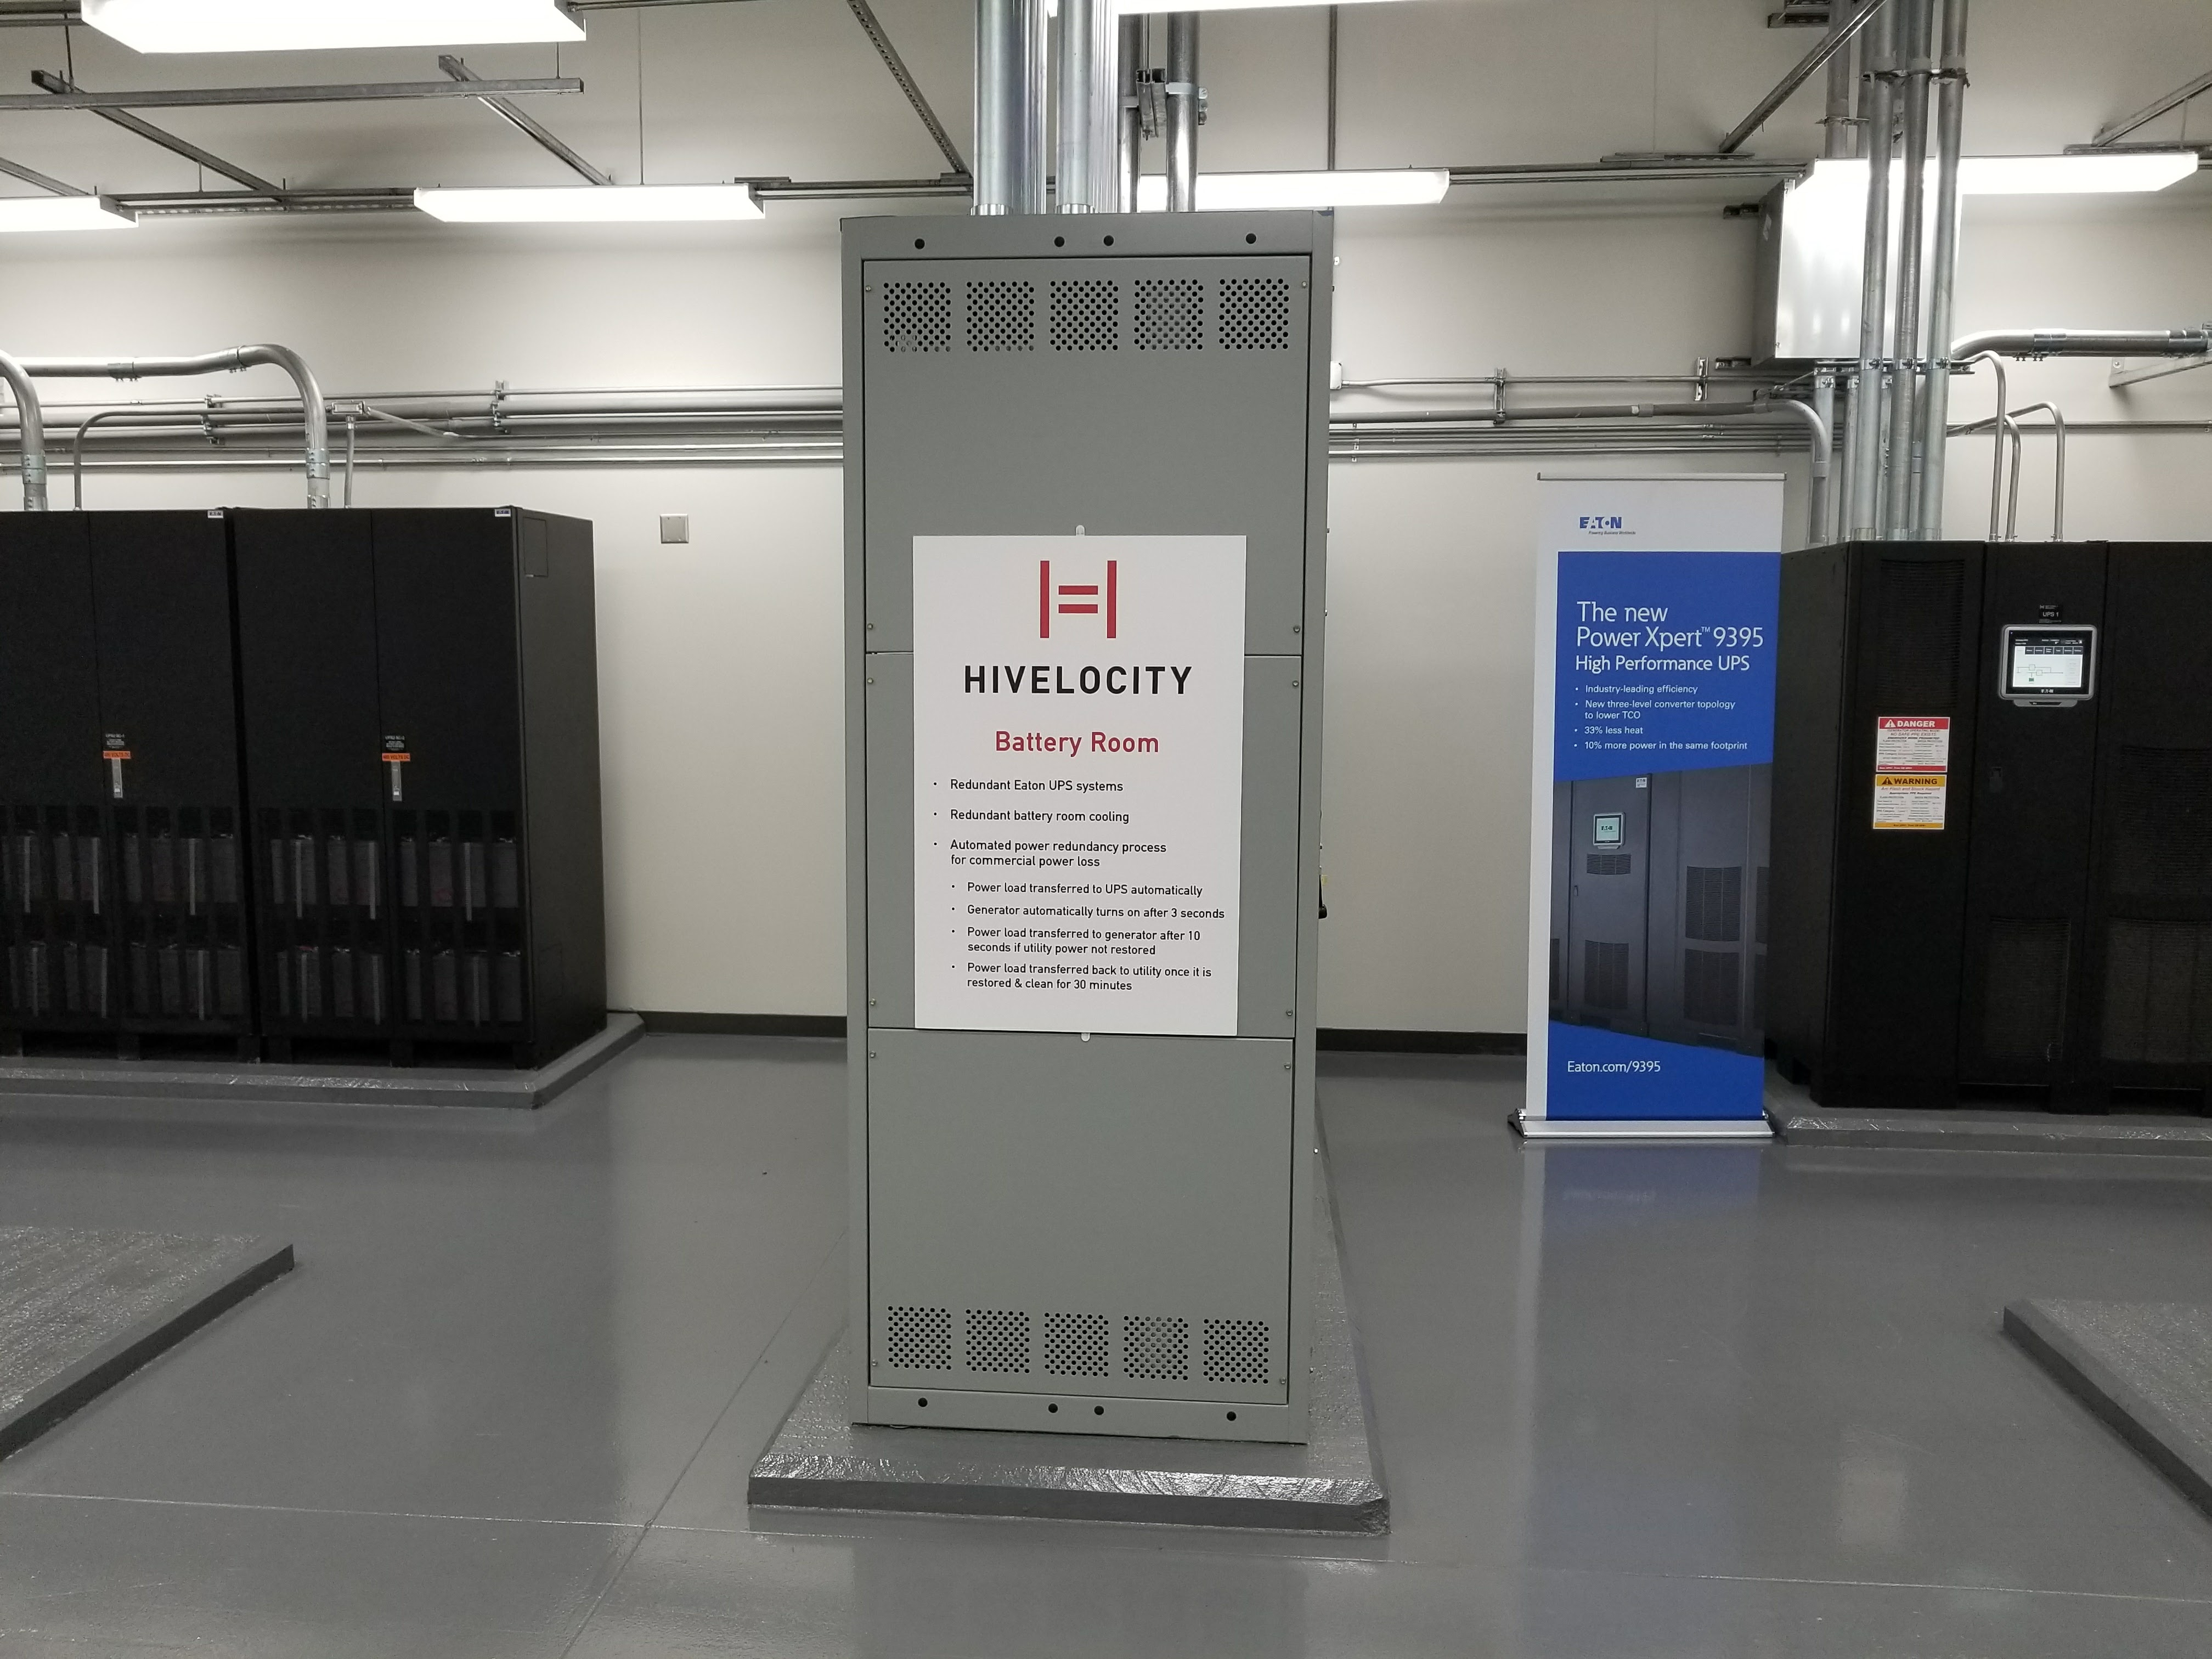 Dedicated Server Data Center Battery Room at Hivelocity. This is where the dedicated servers are powered.